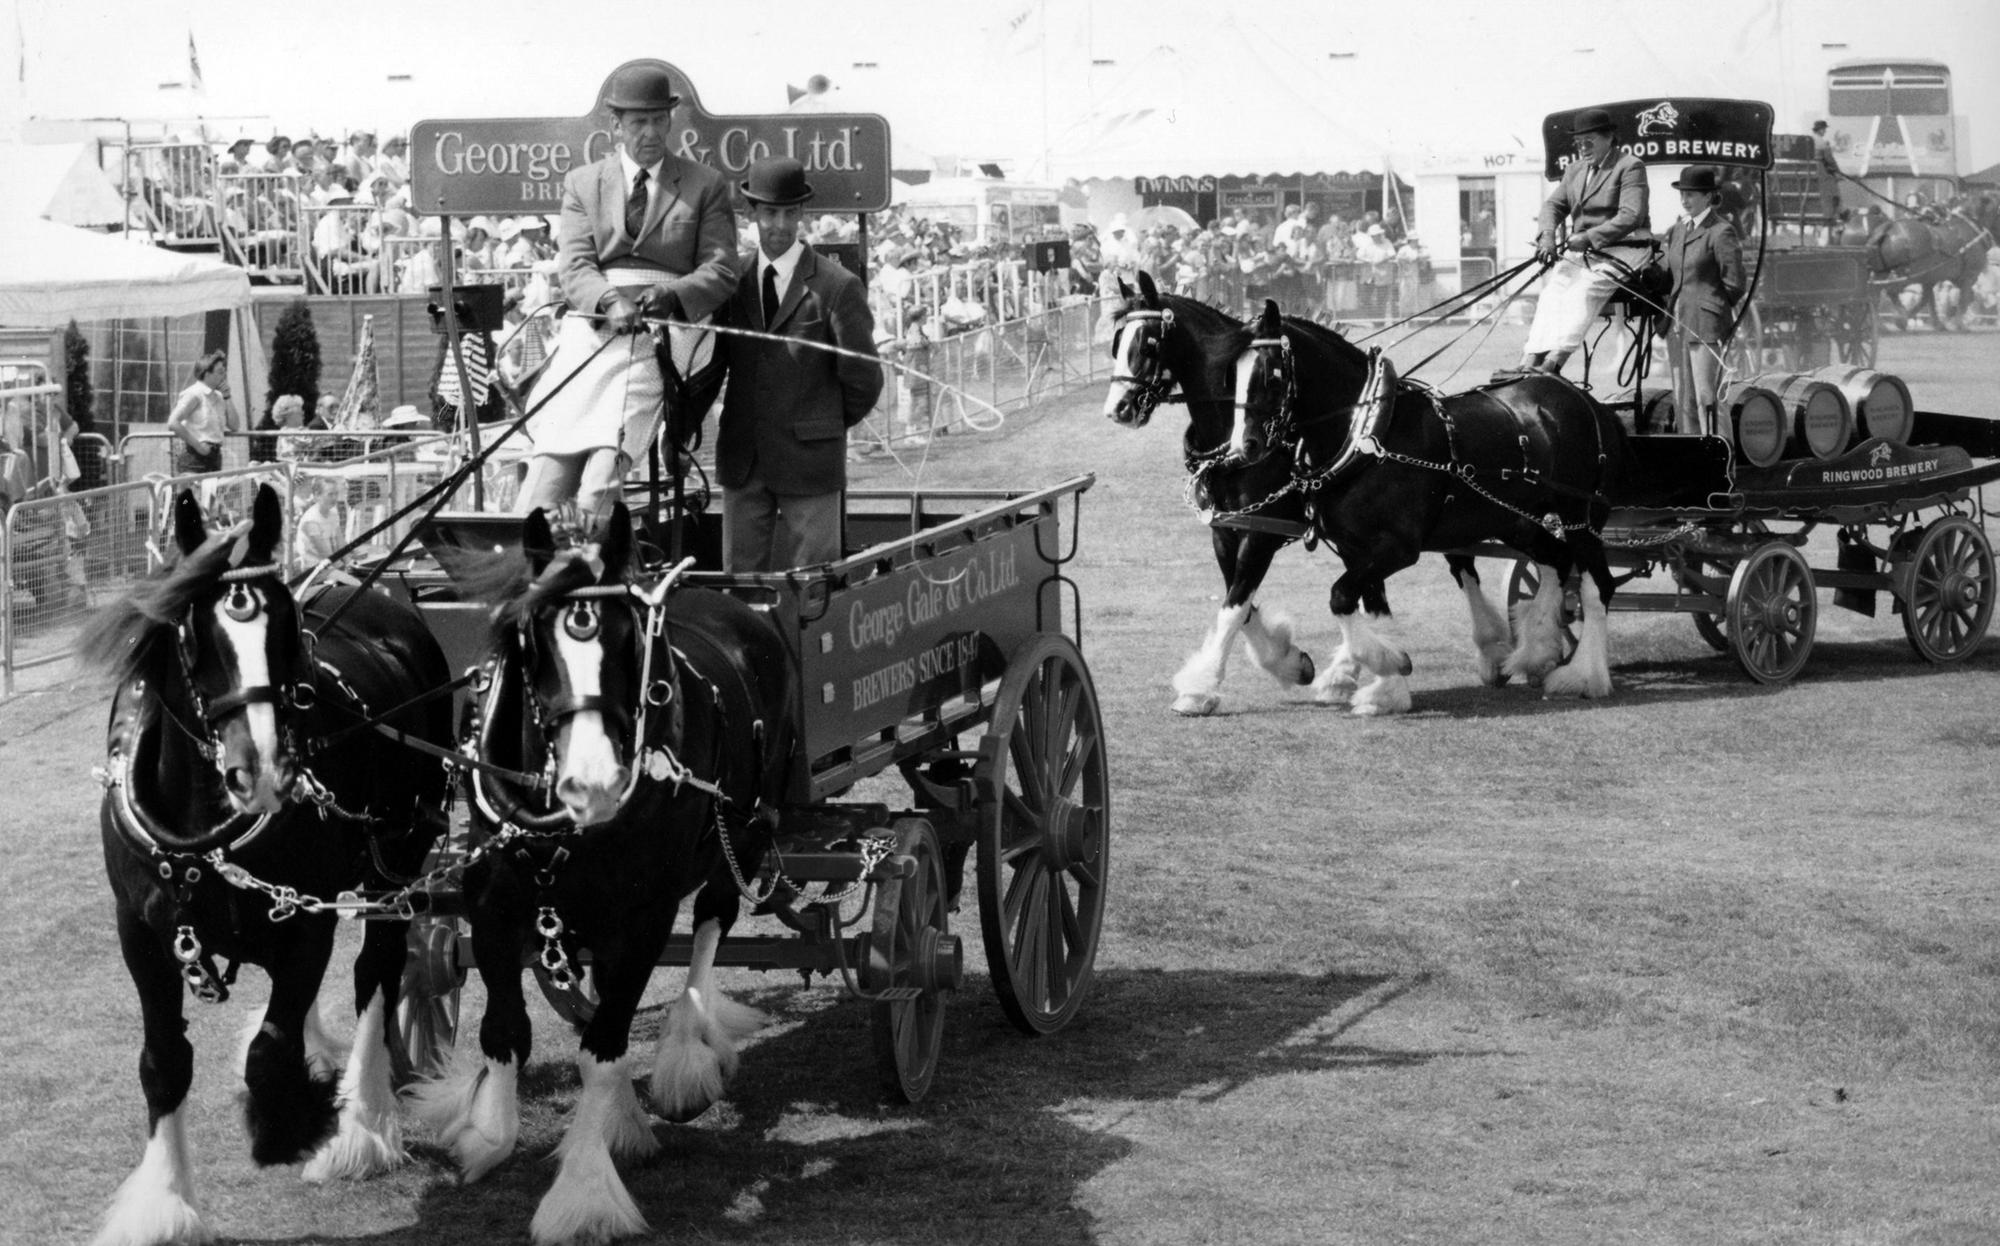 23 fun memories of the popular Southsea Show